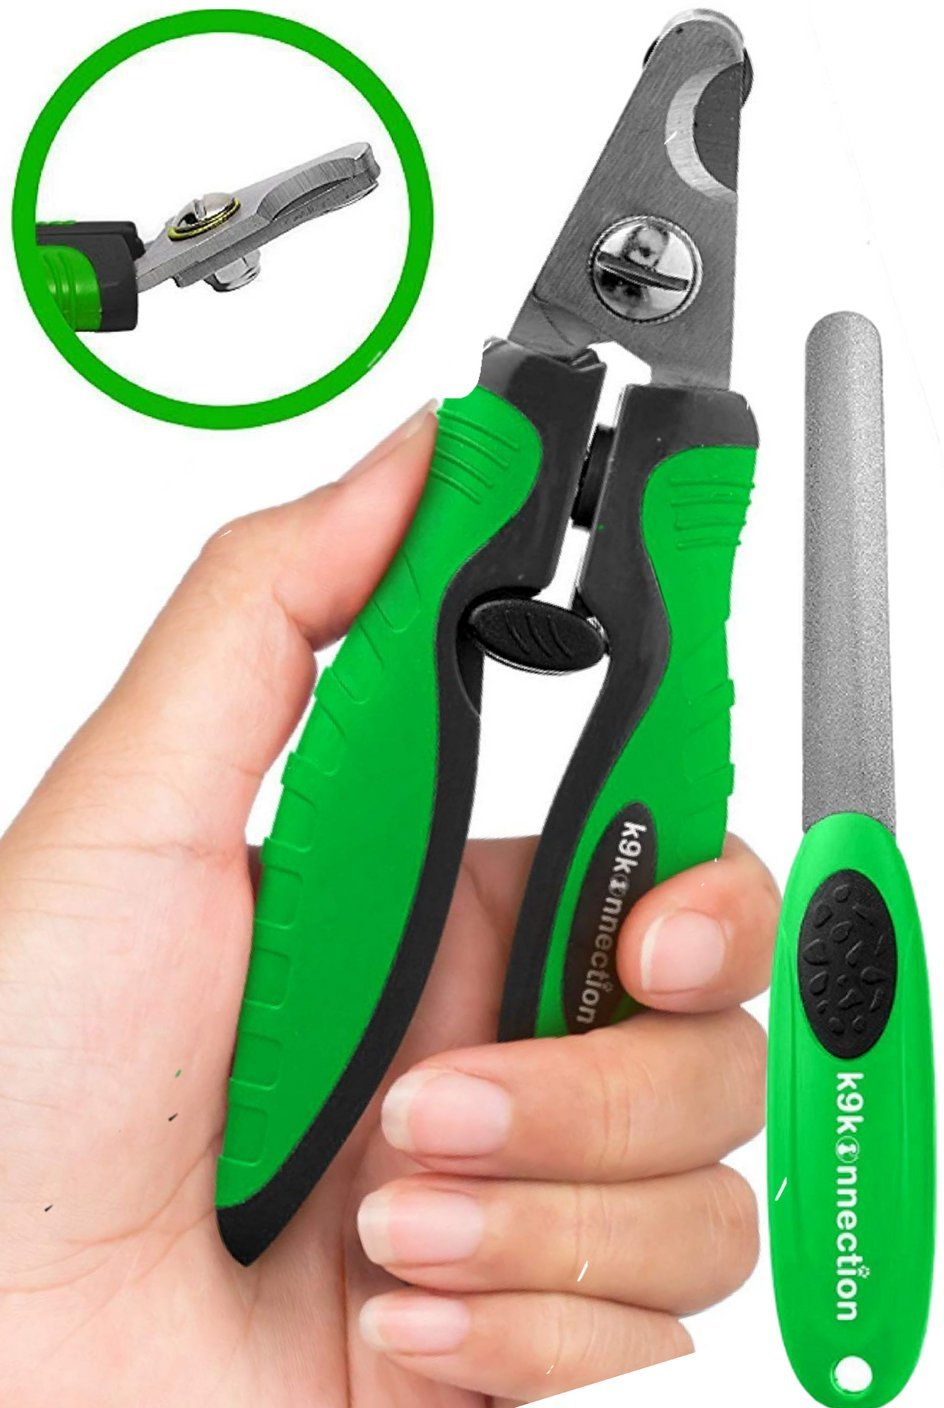 K9KONNECTION Dog Nail Clippers - With Quick Sensor & BONUS File - Professional Trimmers for Large, Small & Medium Breed Dogs - Safety Guard to Avoid Over Cutting Nails - Angled Sharp Blades